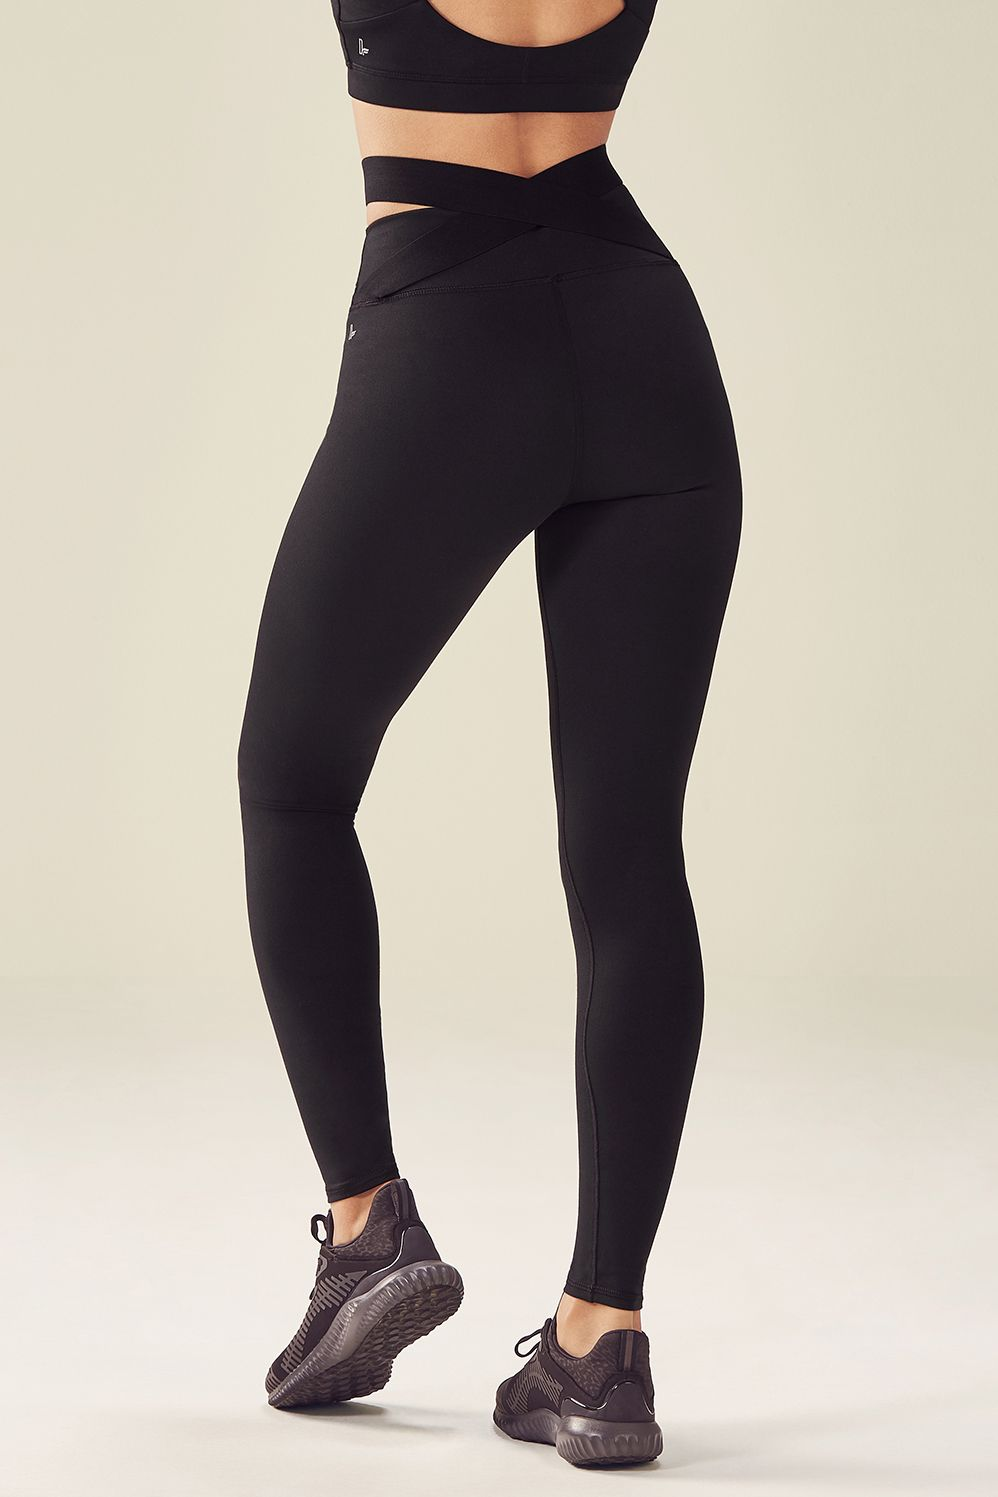 8a3b9acf83b94 High-Waisted Statement PowerHold Legging - Fabletics | style in 2019 ...